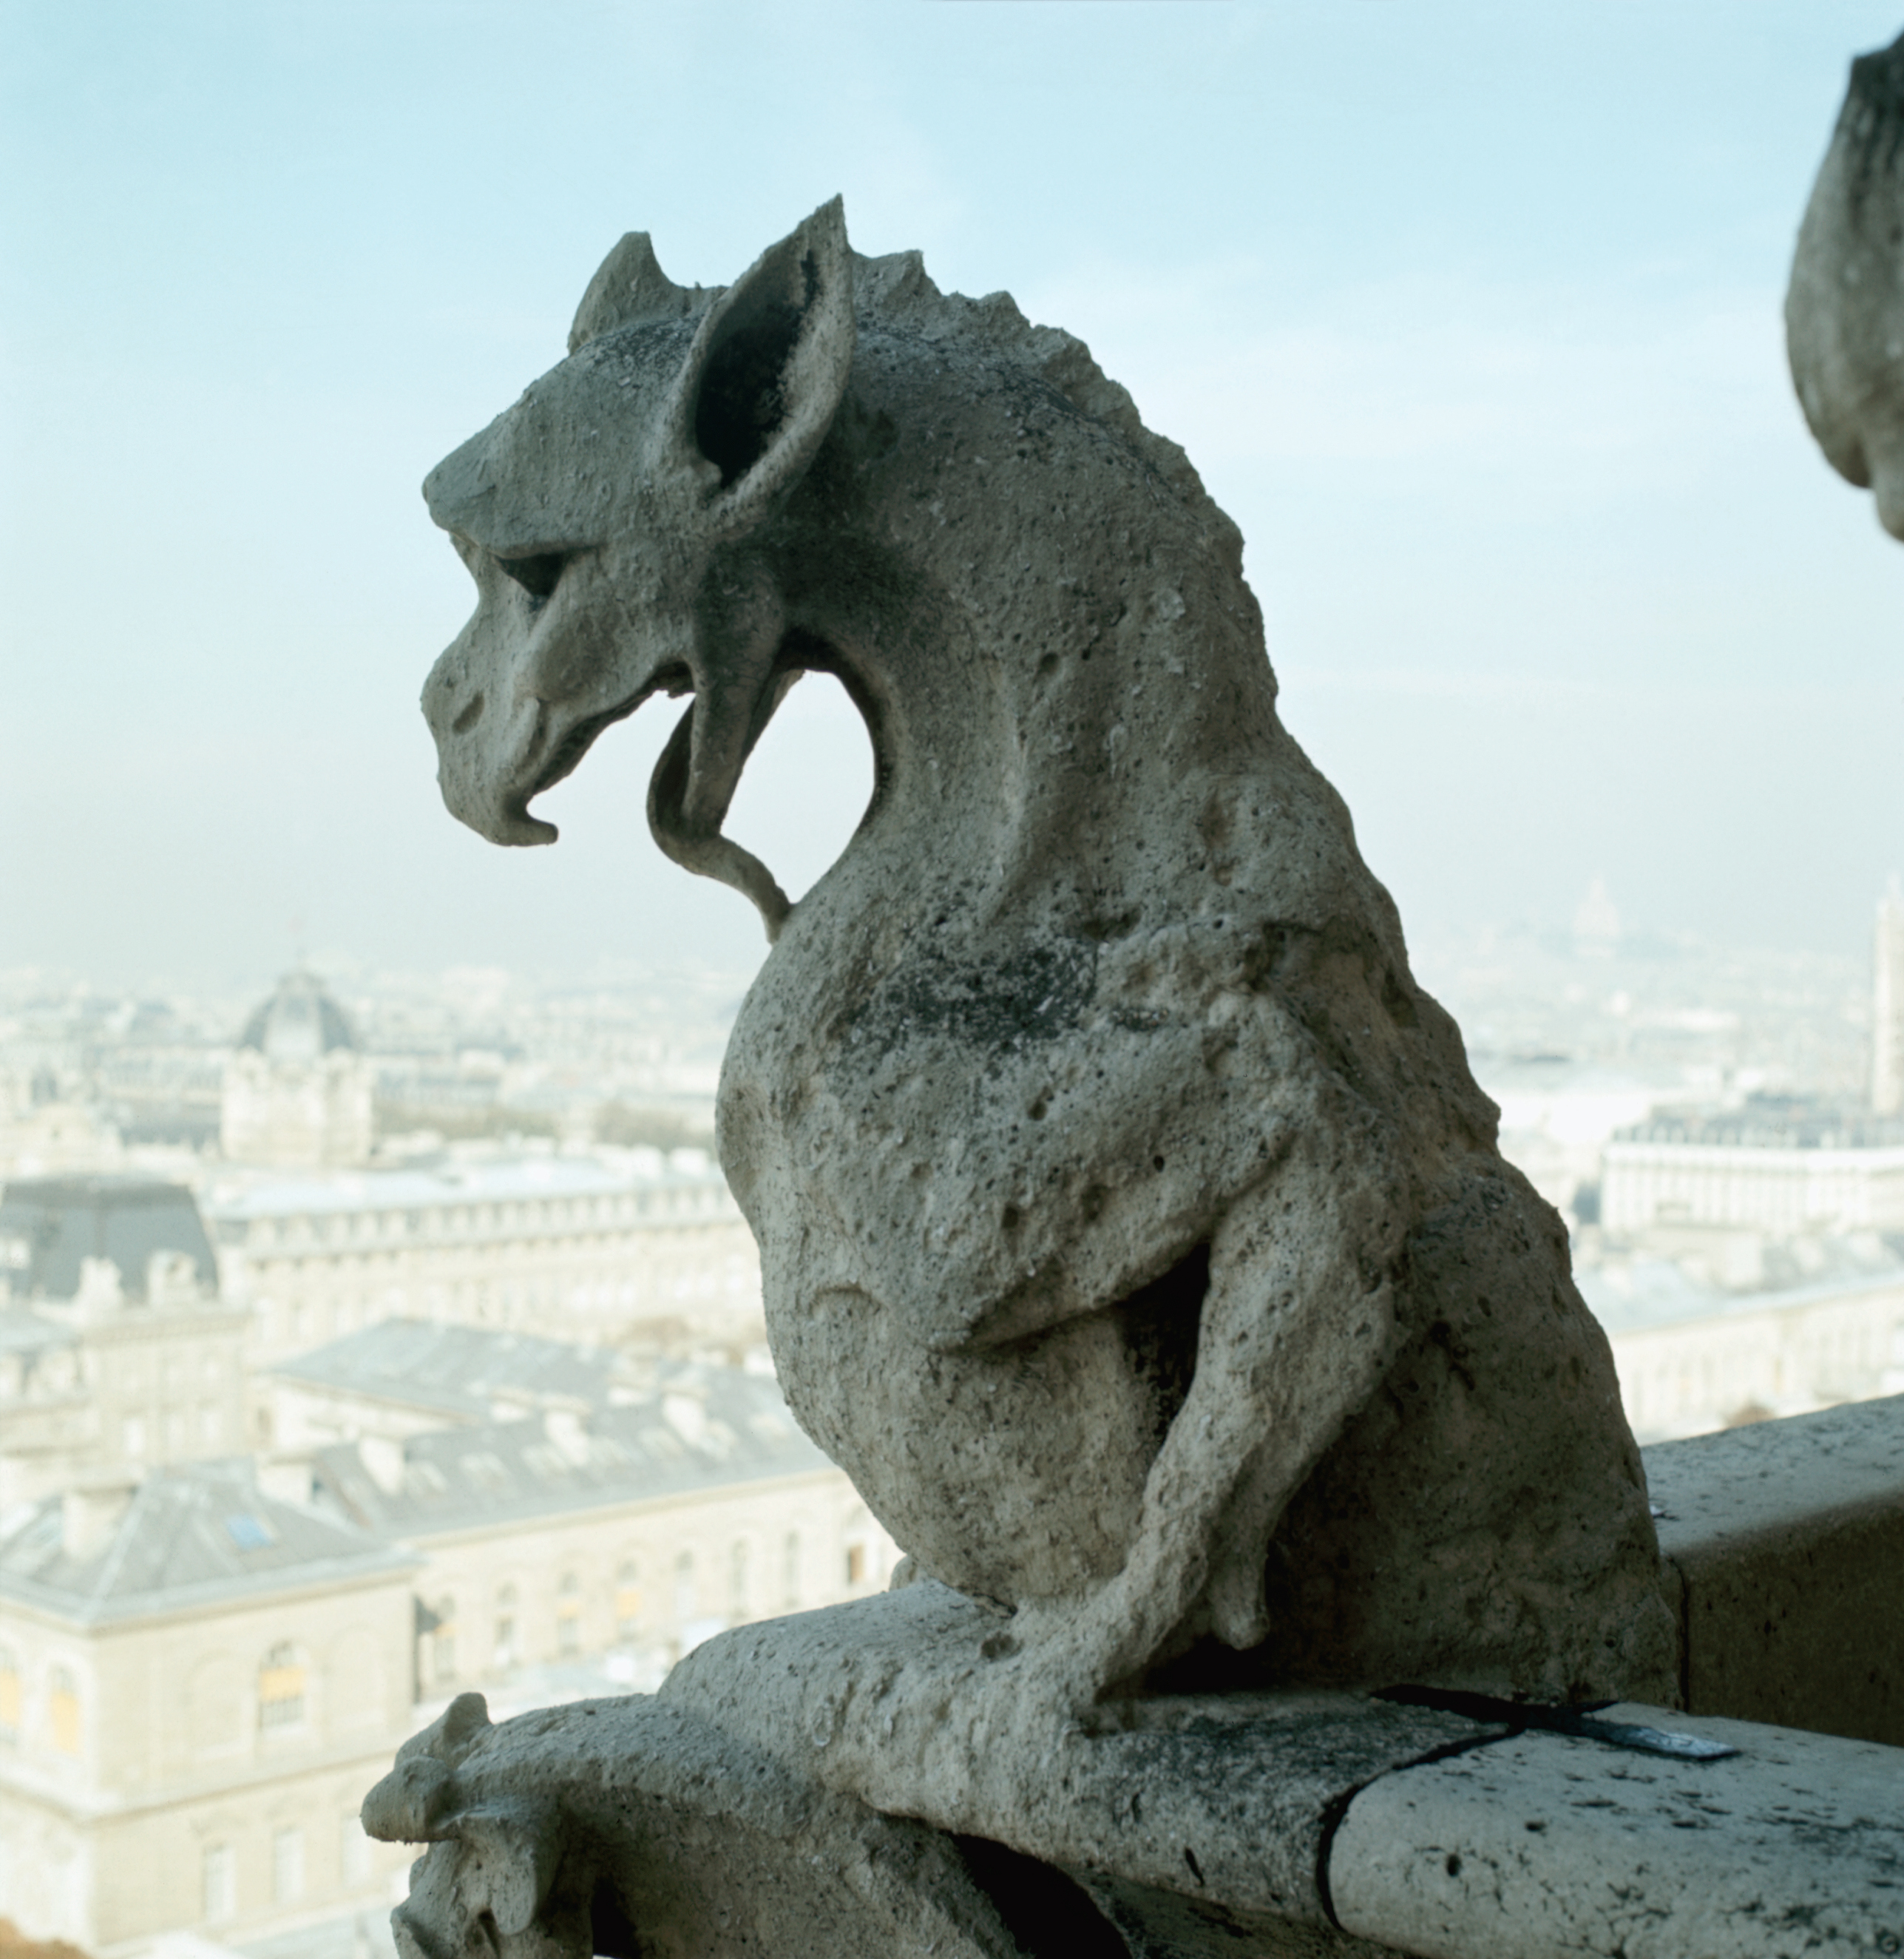 Detail of Gargoyle from Gargoyle Sculptures at Notre Dame Cathedral